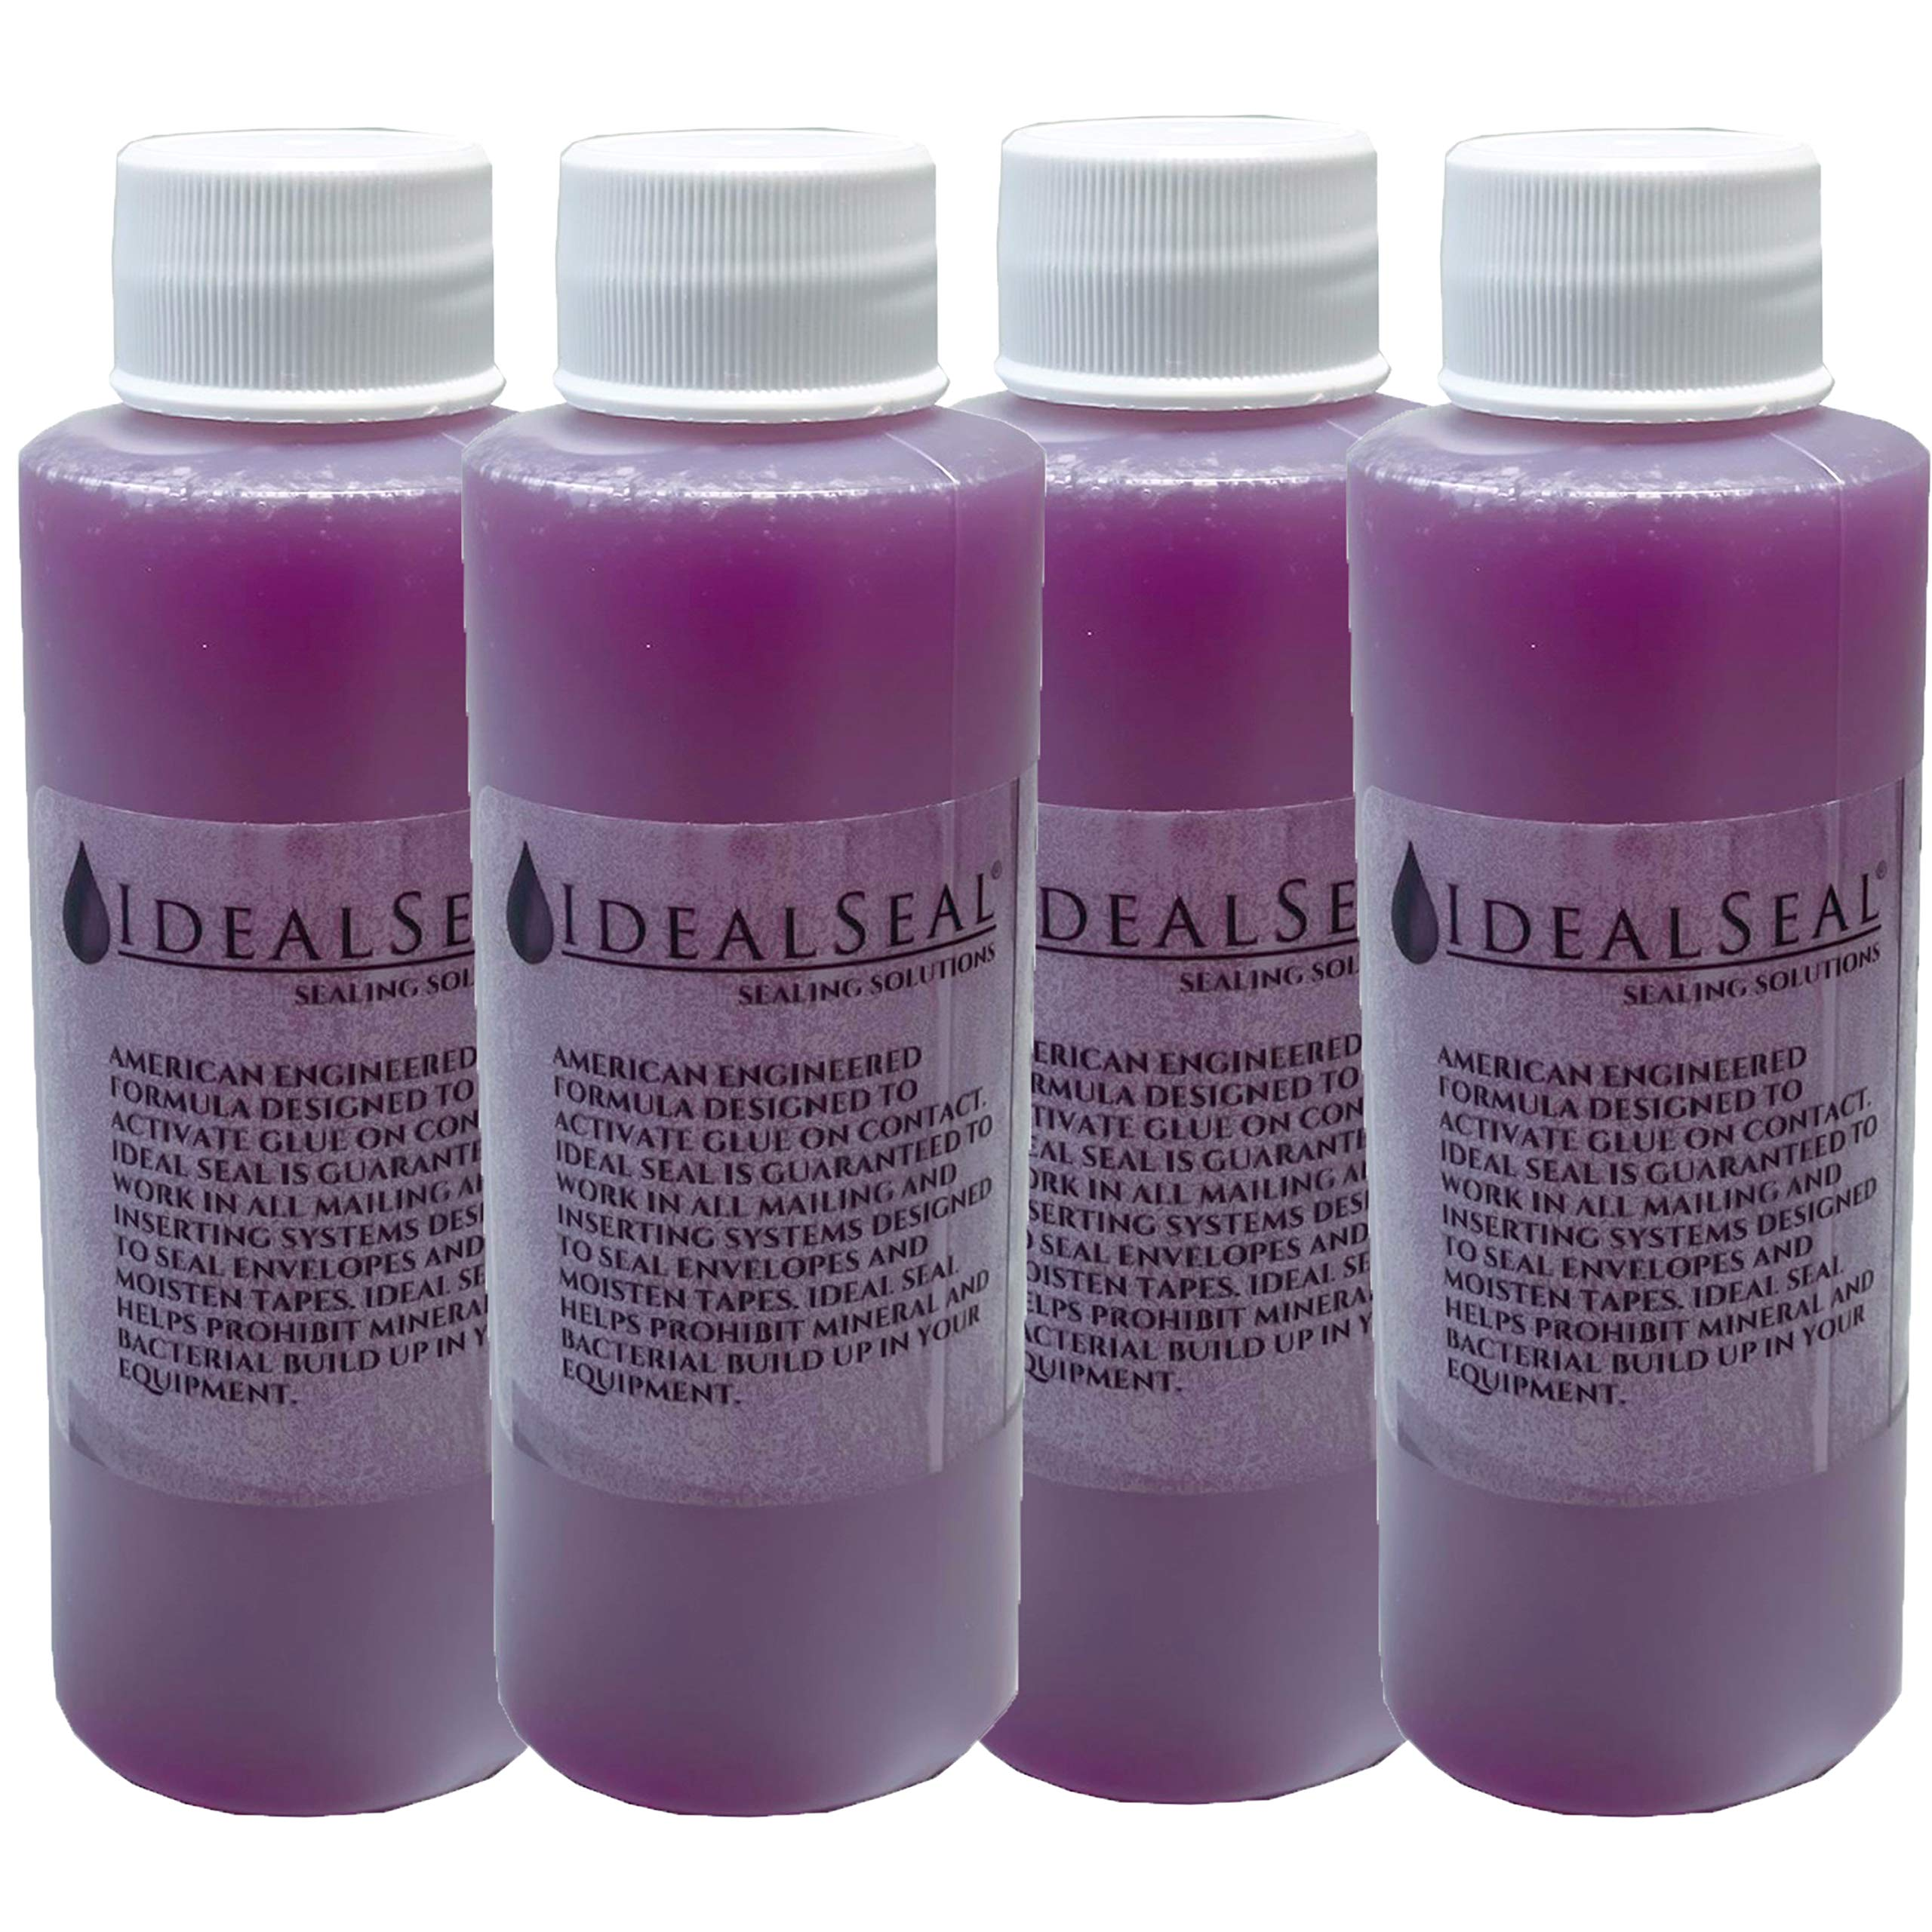 IDEALSEAL 1 Bottle 4 Oz. of Concentrated Sealing Solution Makes 2 Gallons Compare to Pitney Bowes EZ Seal (4) by IDEALSEAL